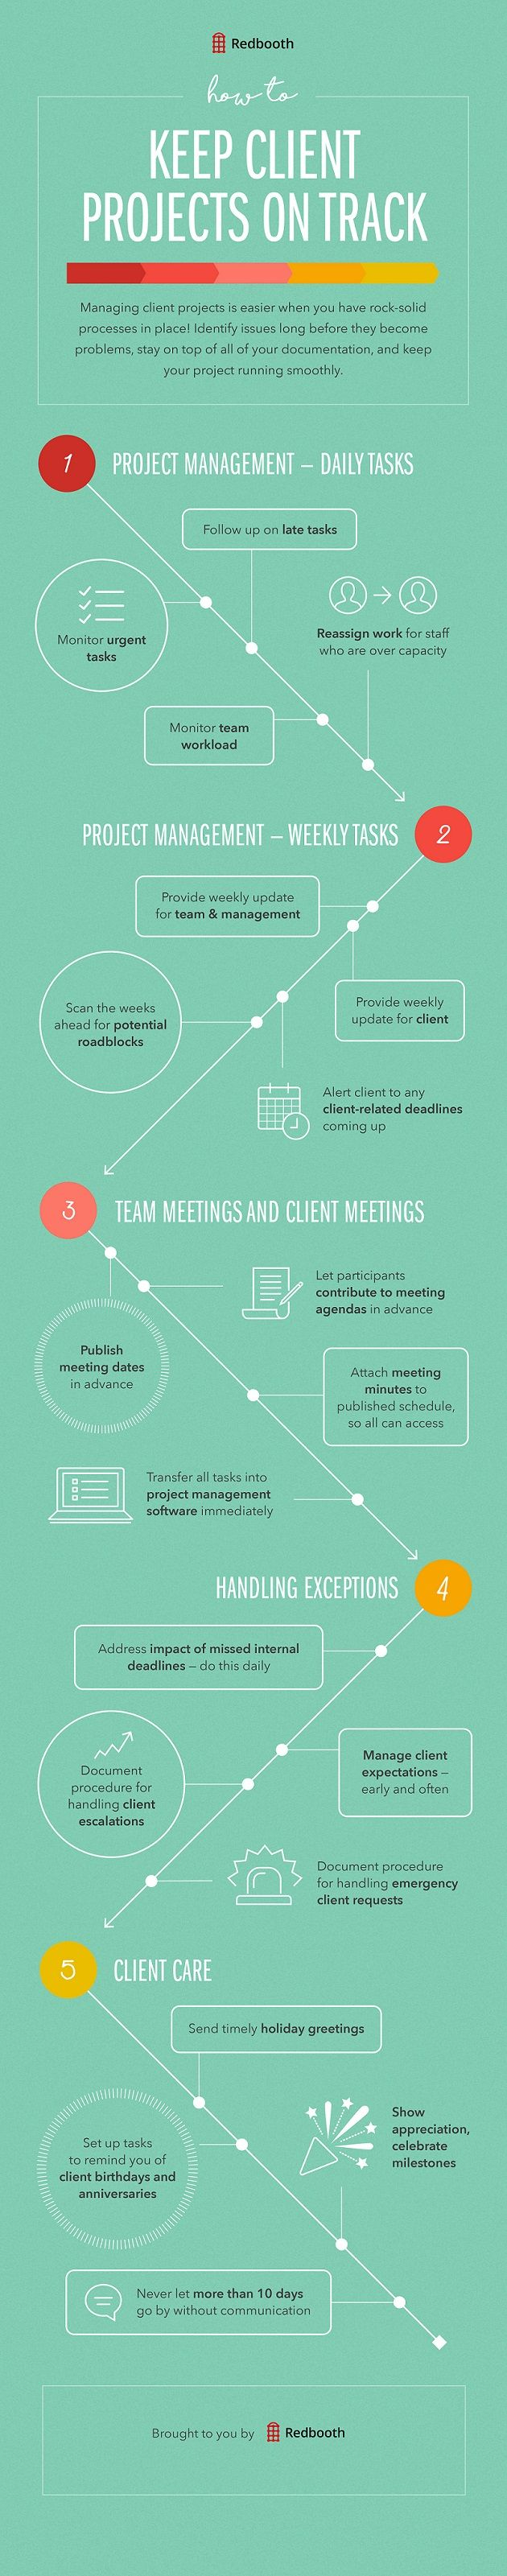 Customer Relationships - How to Keep Client Projects on Track [Infographic]…